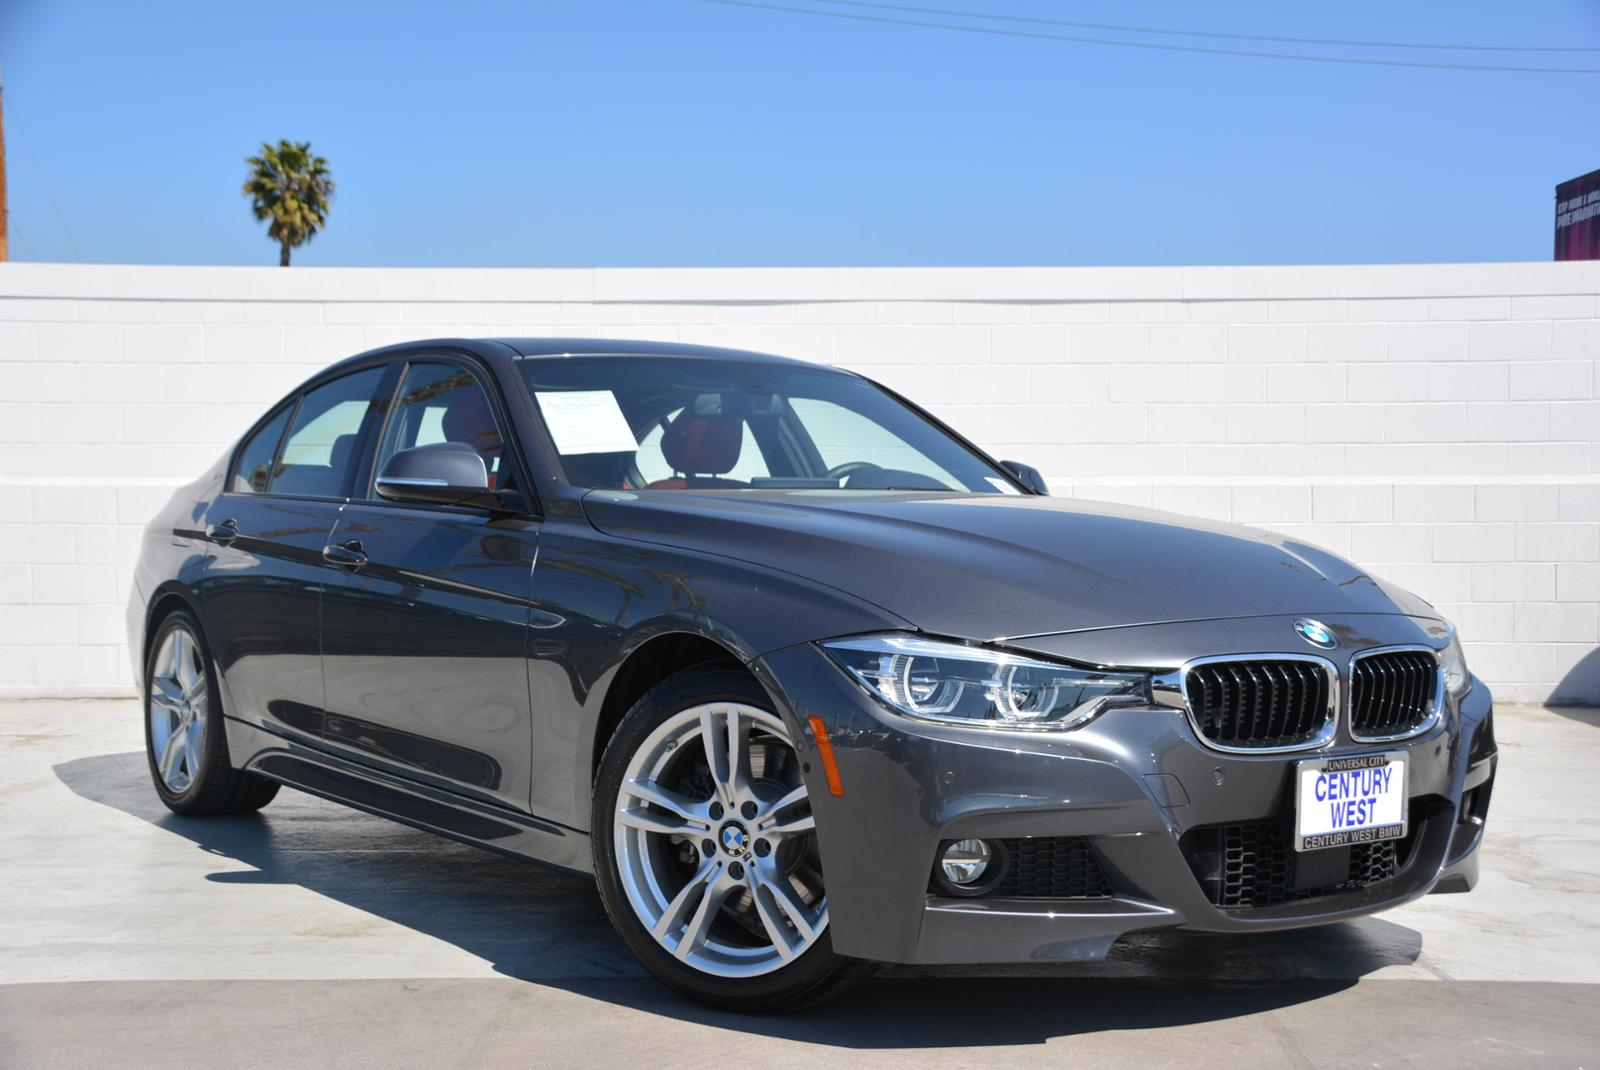 Pre-Owned 2018 BMW 3 Series 330e iPerformance Rear Wheel Drive 330e iPerformance Plug-